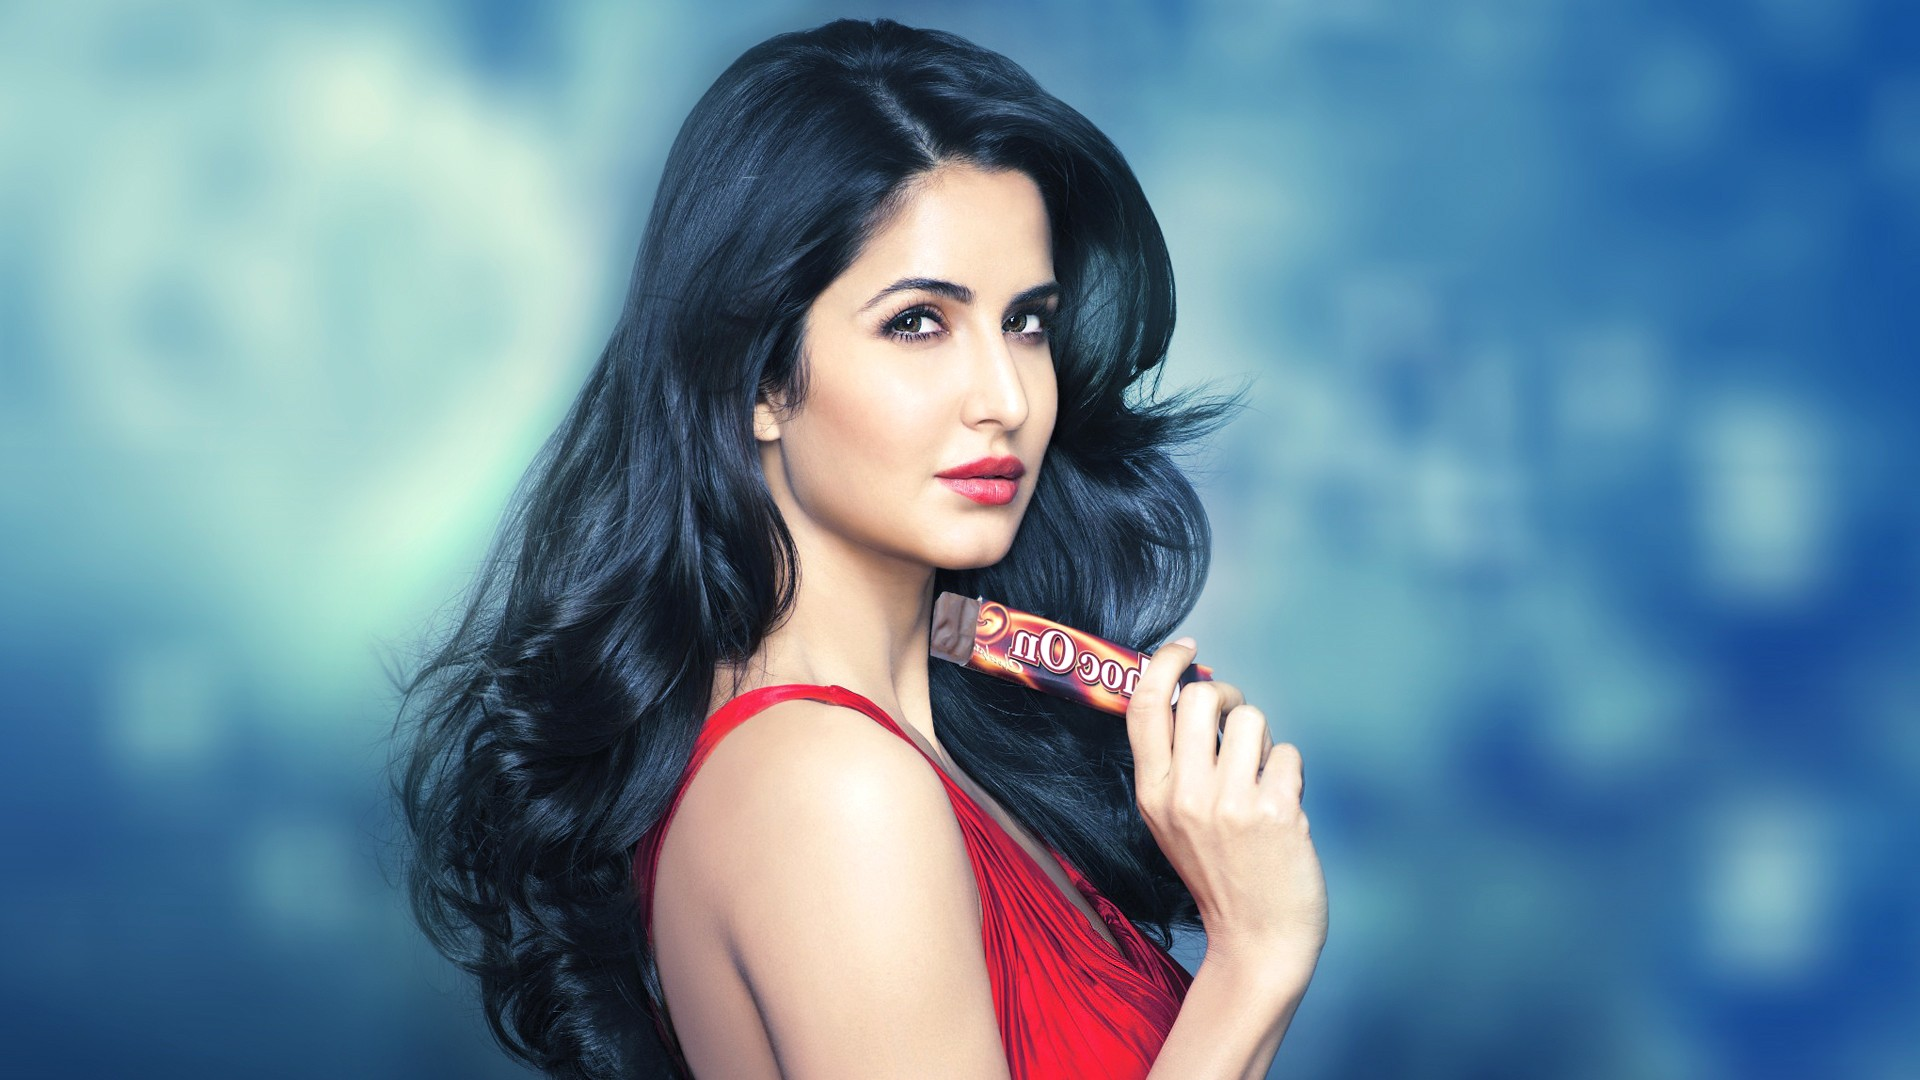 Katrina kaif 20 hd indian celebrities 4k wallpapers images backgrounds photos and pictures - Celebrity background ...